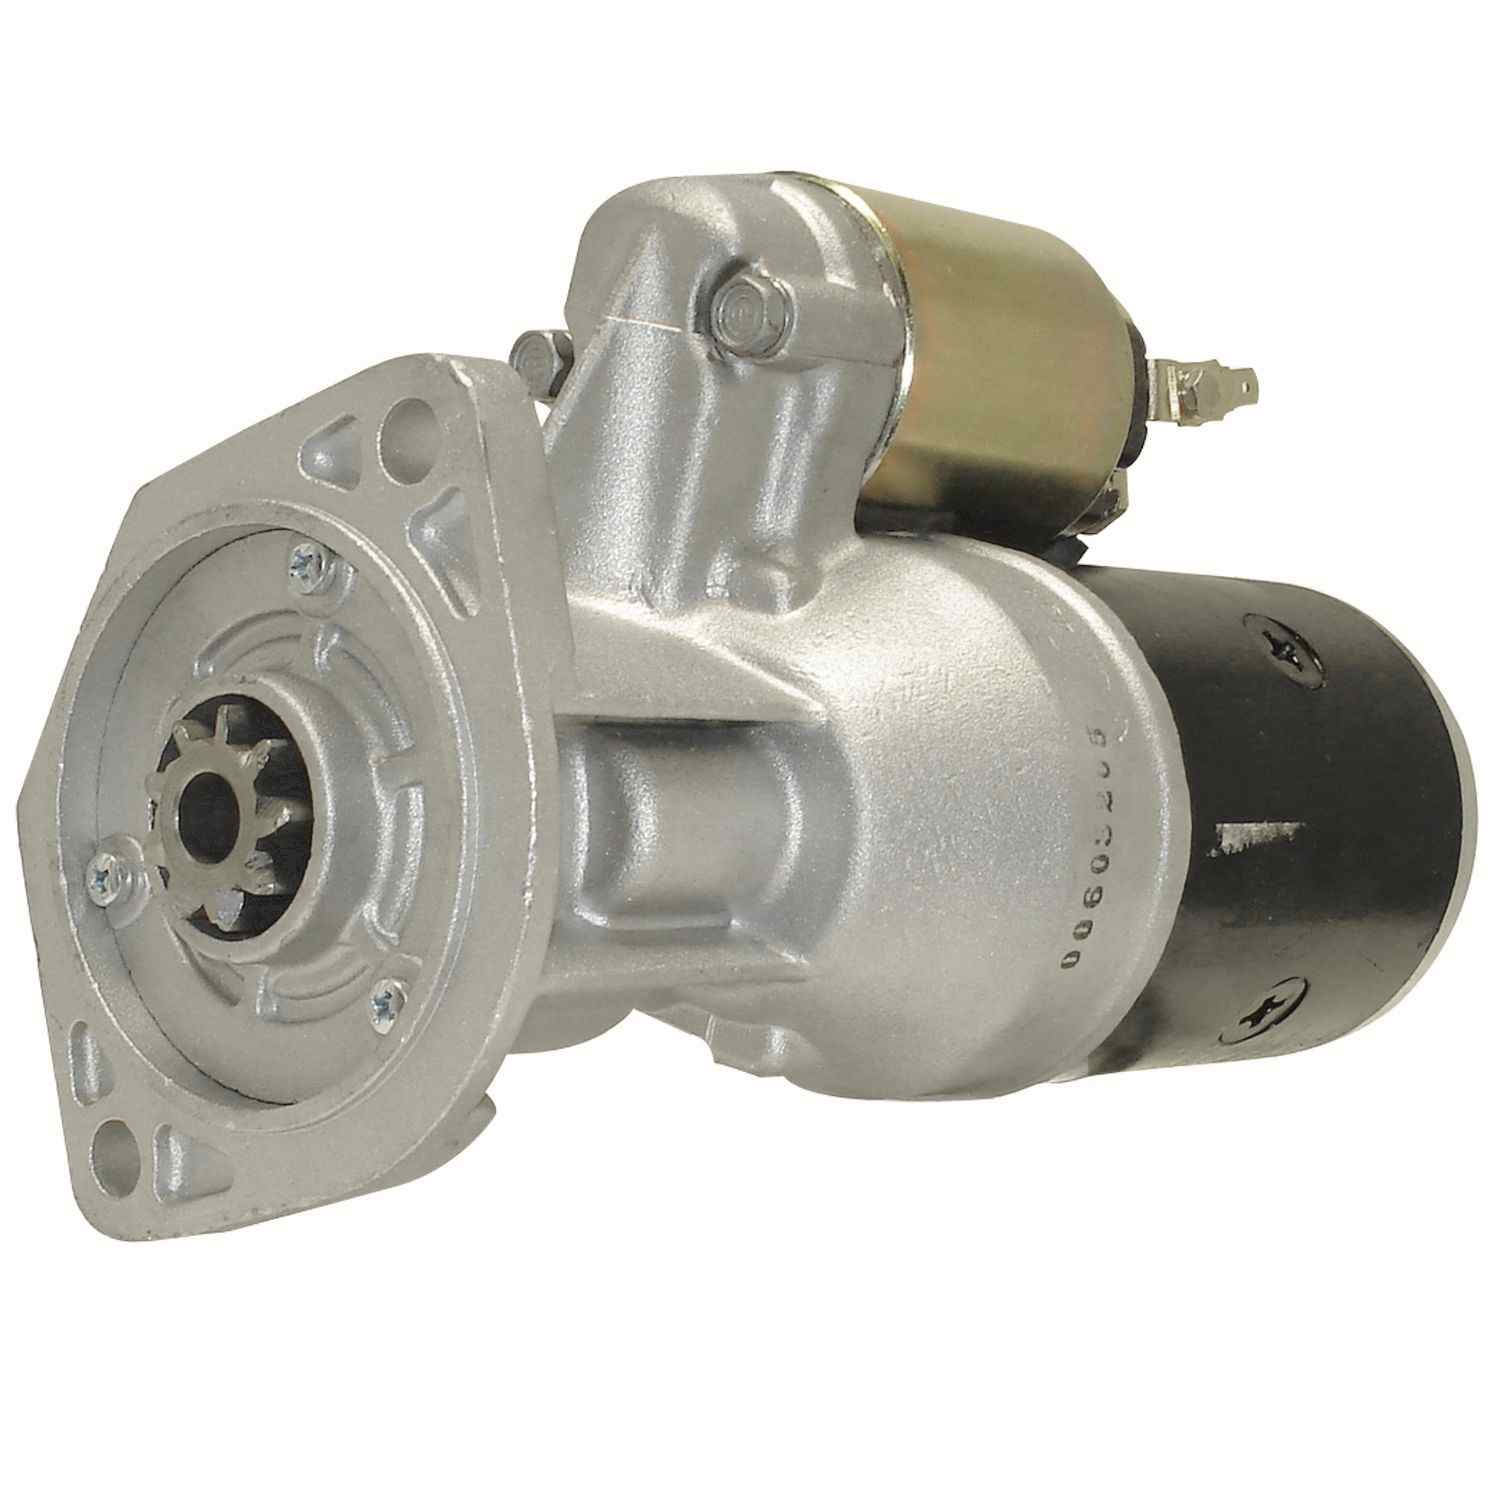 ACDELCO GOLD/PROFESSIONAL - Reman Starter Motor - DCC 336-1487